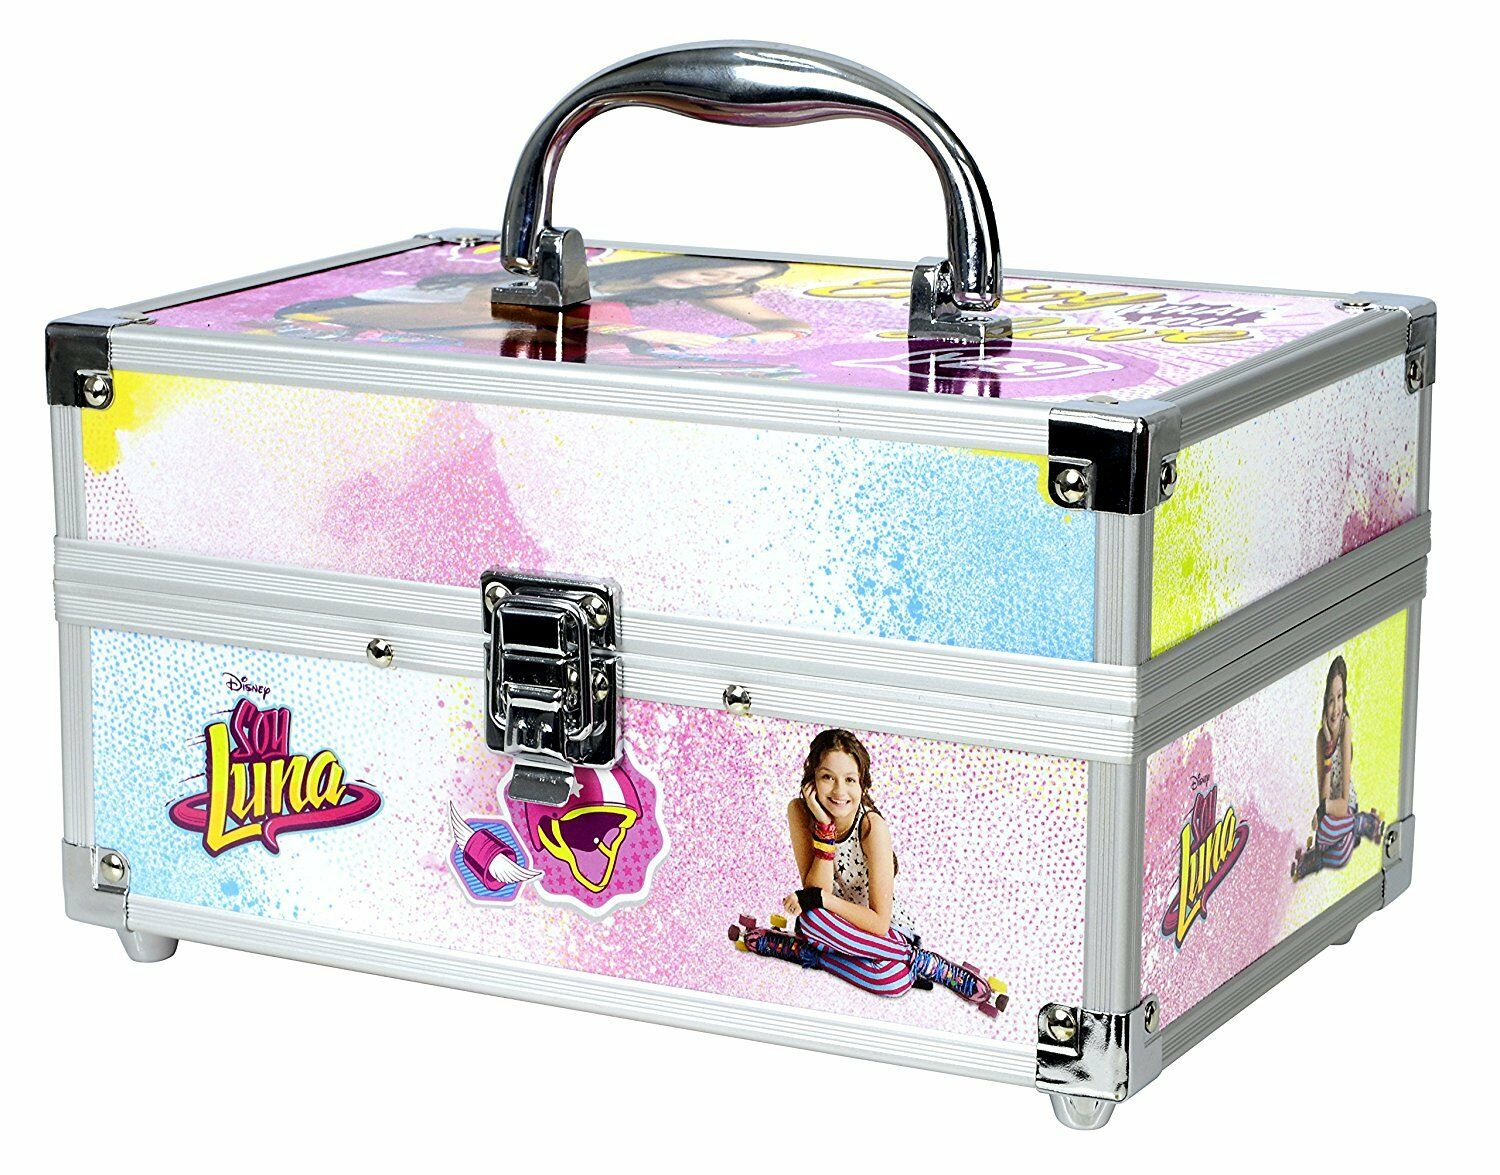 Make-up and Jewel Case    Soy Luna with everything you need to create your look 472a64